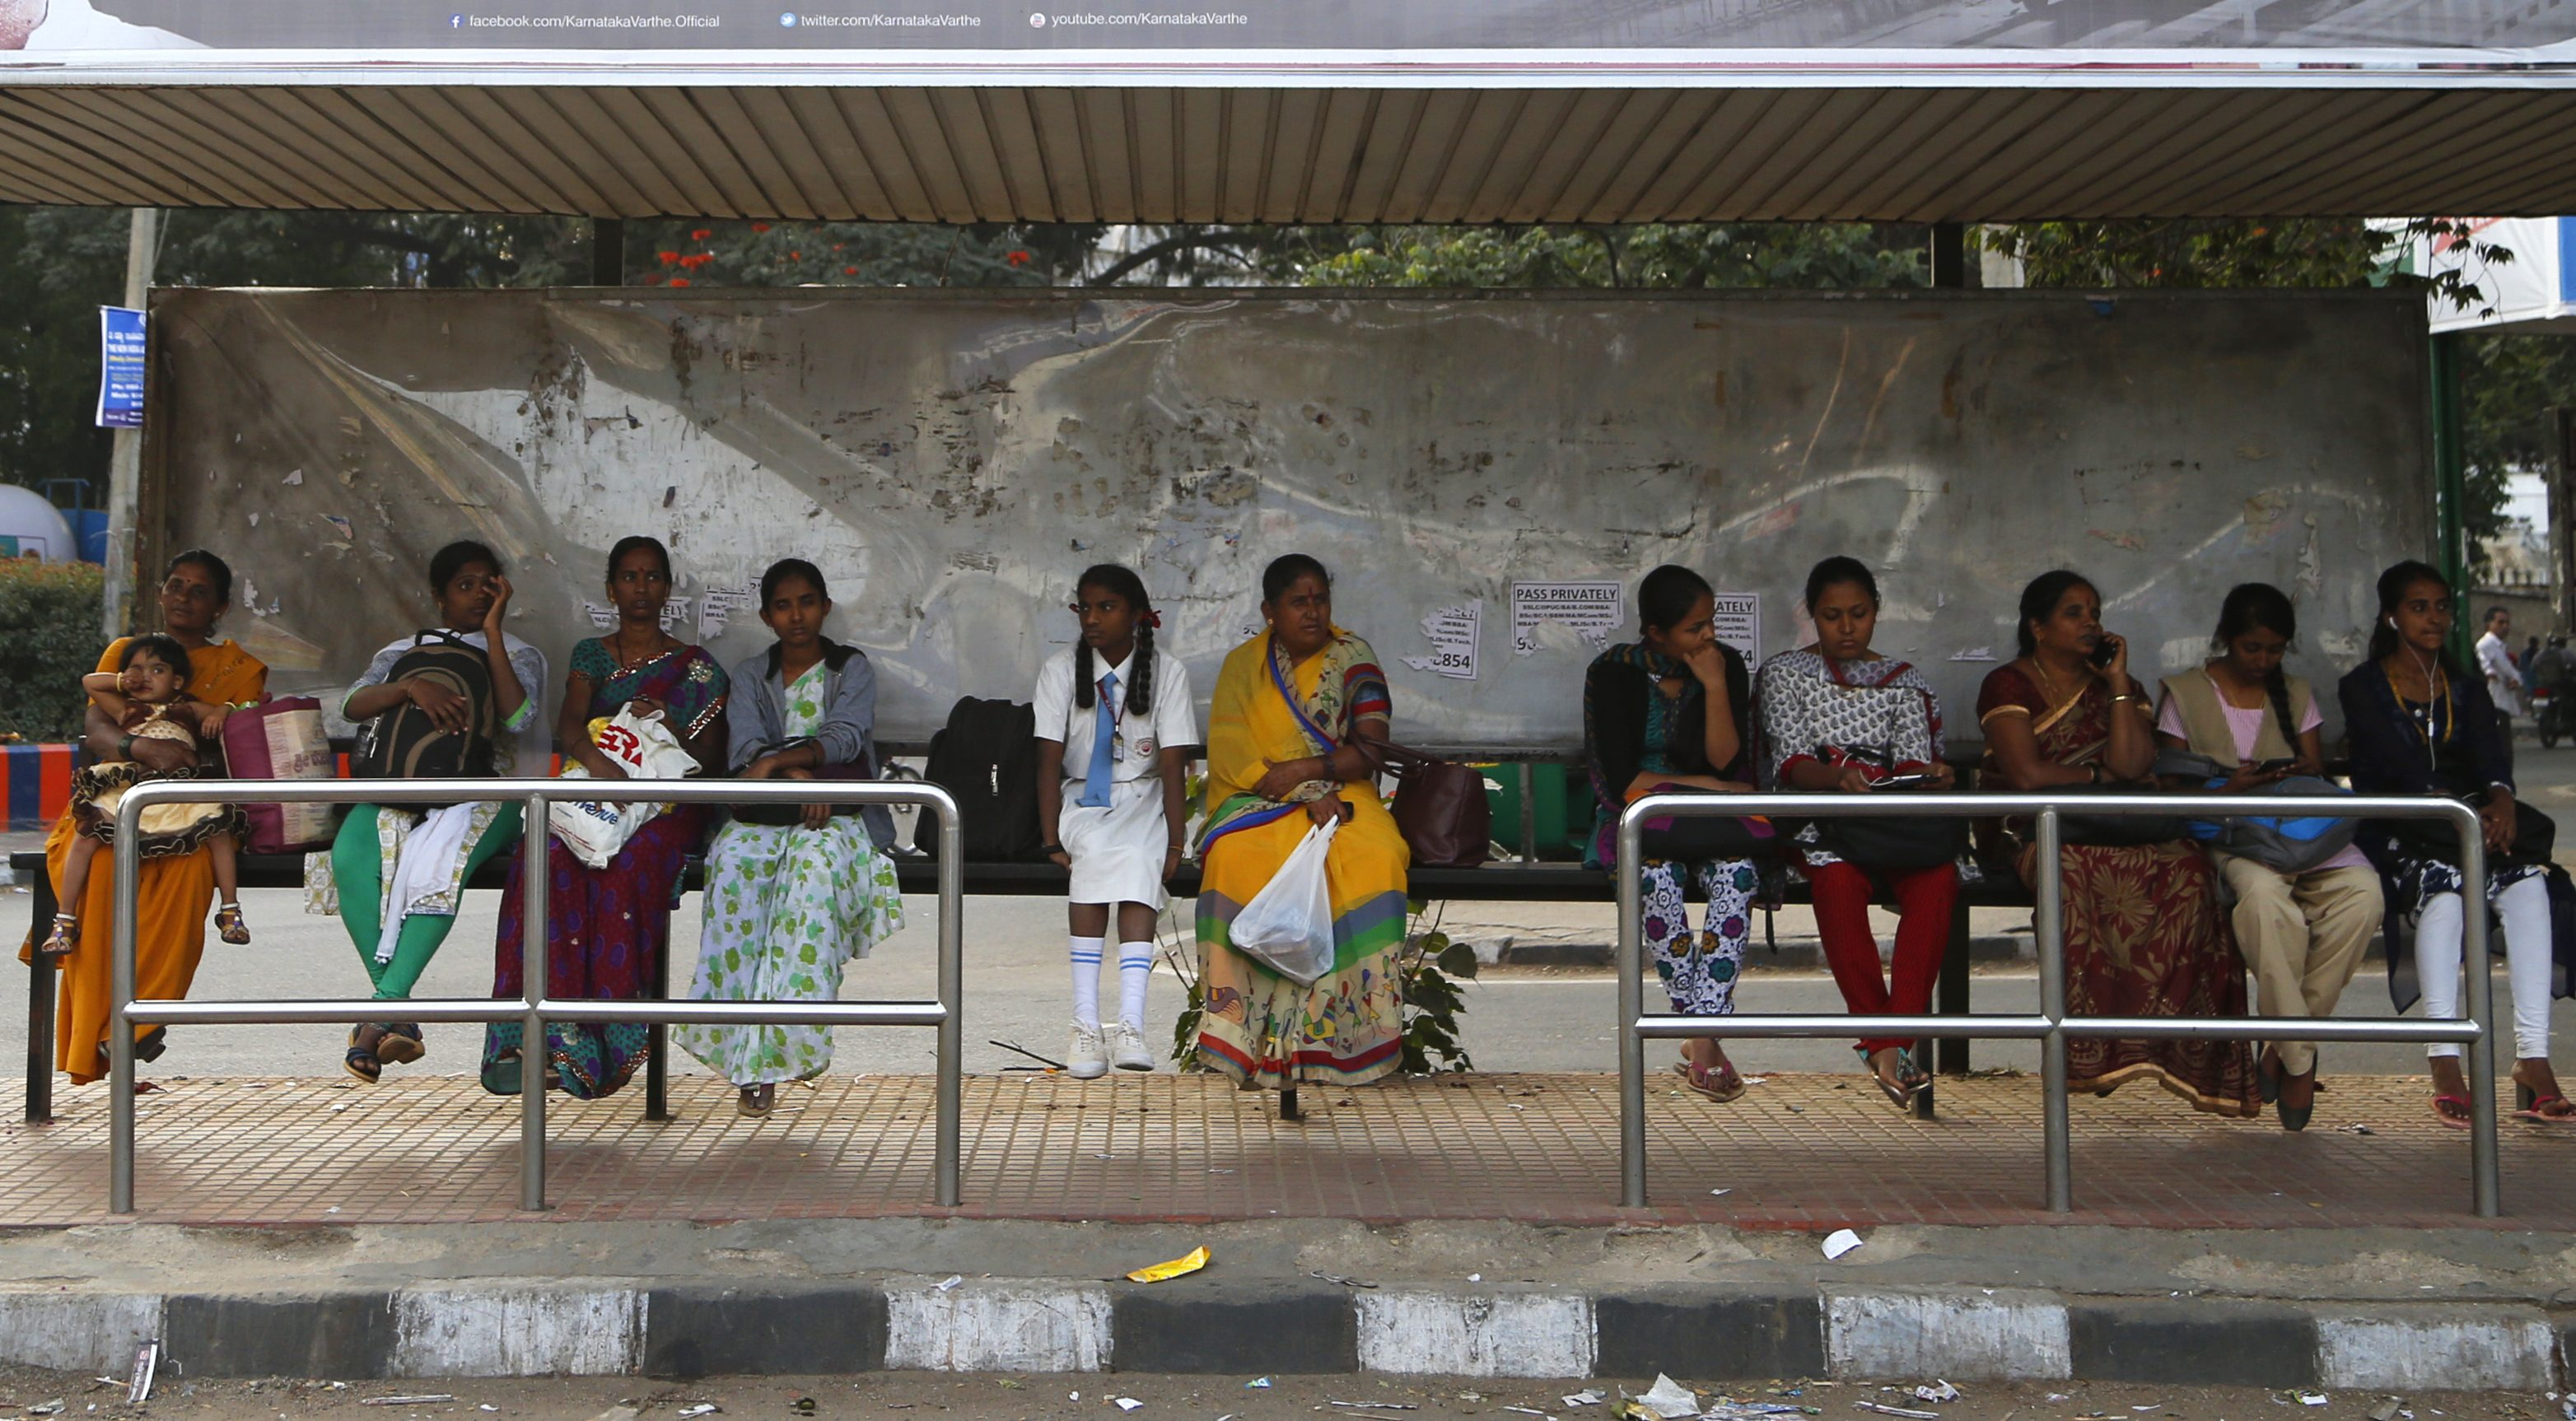 Indian women wait at a bus stop in Bangalore, India, Wednesday, Jan. 4, 2017. Police detained at least six suspects Wednesday, days after outrage erupted in India over several women being groped and molested during New Year's Eve celebrations in the southern city of Bangalore, the country's information technology hub. The incident highlights the persistent violence against women in India despite tougher laws against sexual assault imposed after the December 2012 death of a young woman who was gang-raped on a bus in New Delhi. (AP Photo/Aijaz Rahi)